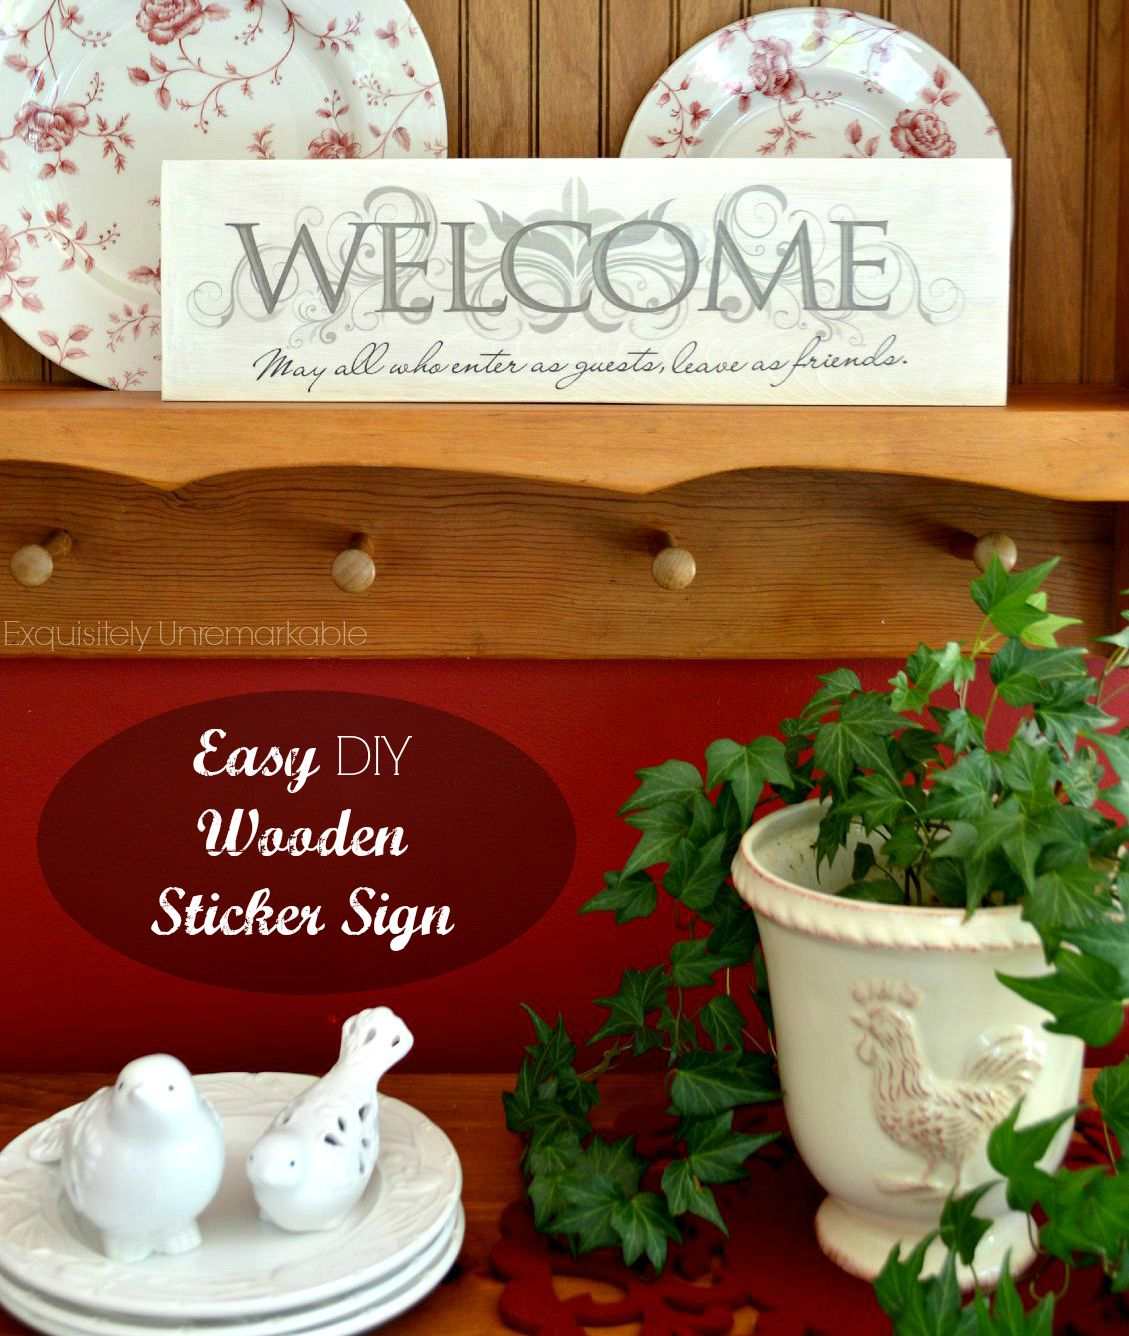 How To Make A Wooden Sticker Sign